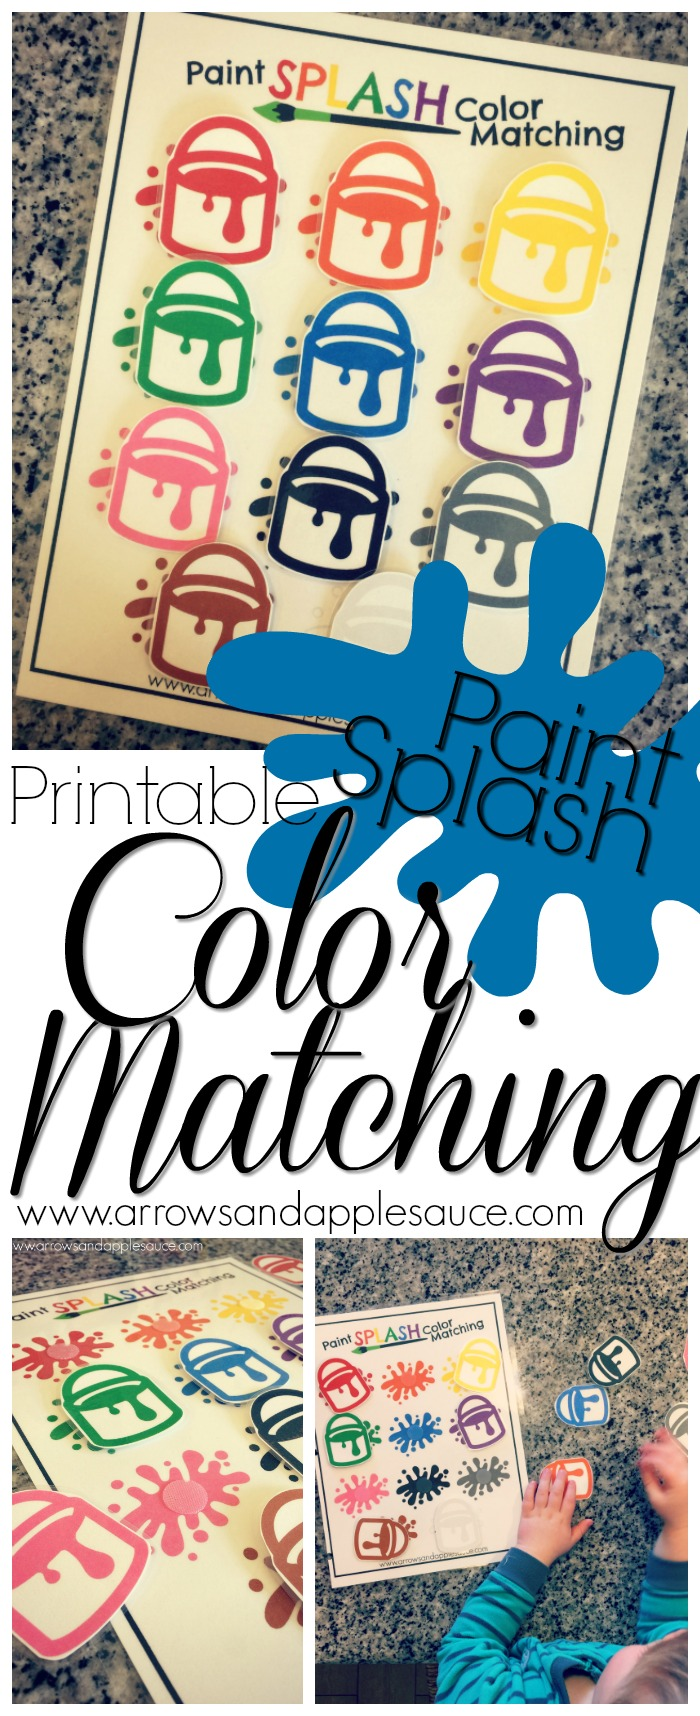 Learning Our Colors | FREE Color Hunt Printable - Arrows & Applesauce